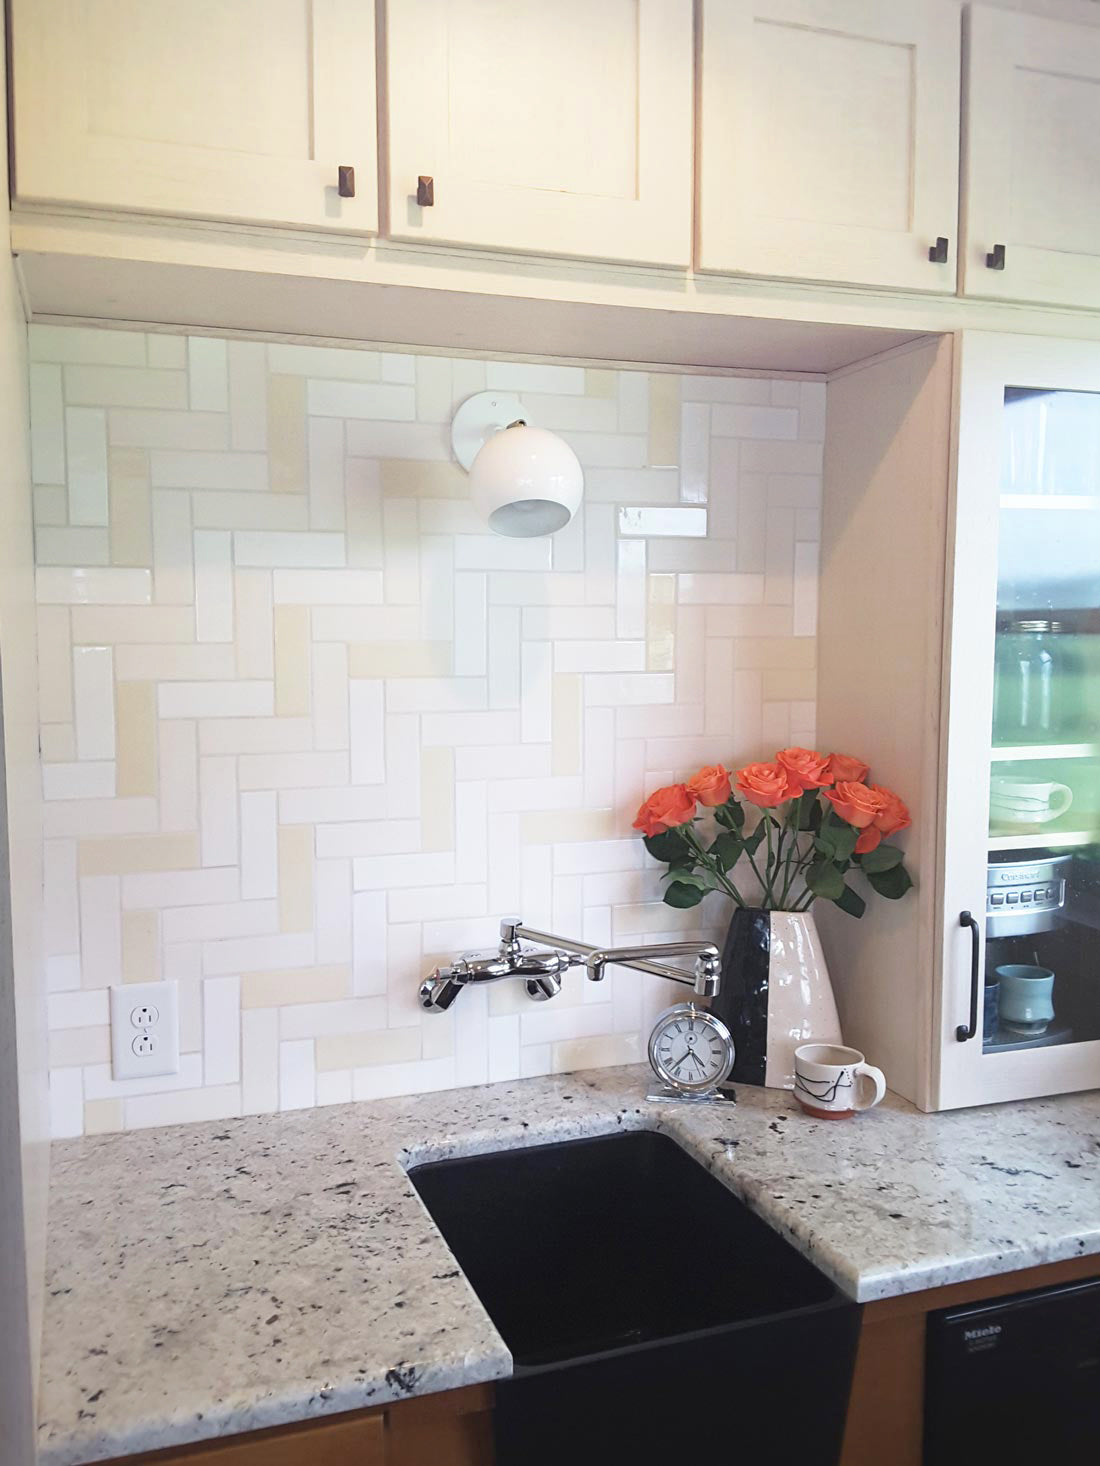 Herringbone Subway Tile 011217 Why People Are Falling In Love With